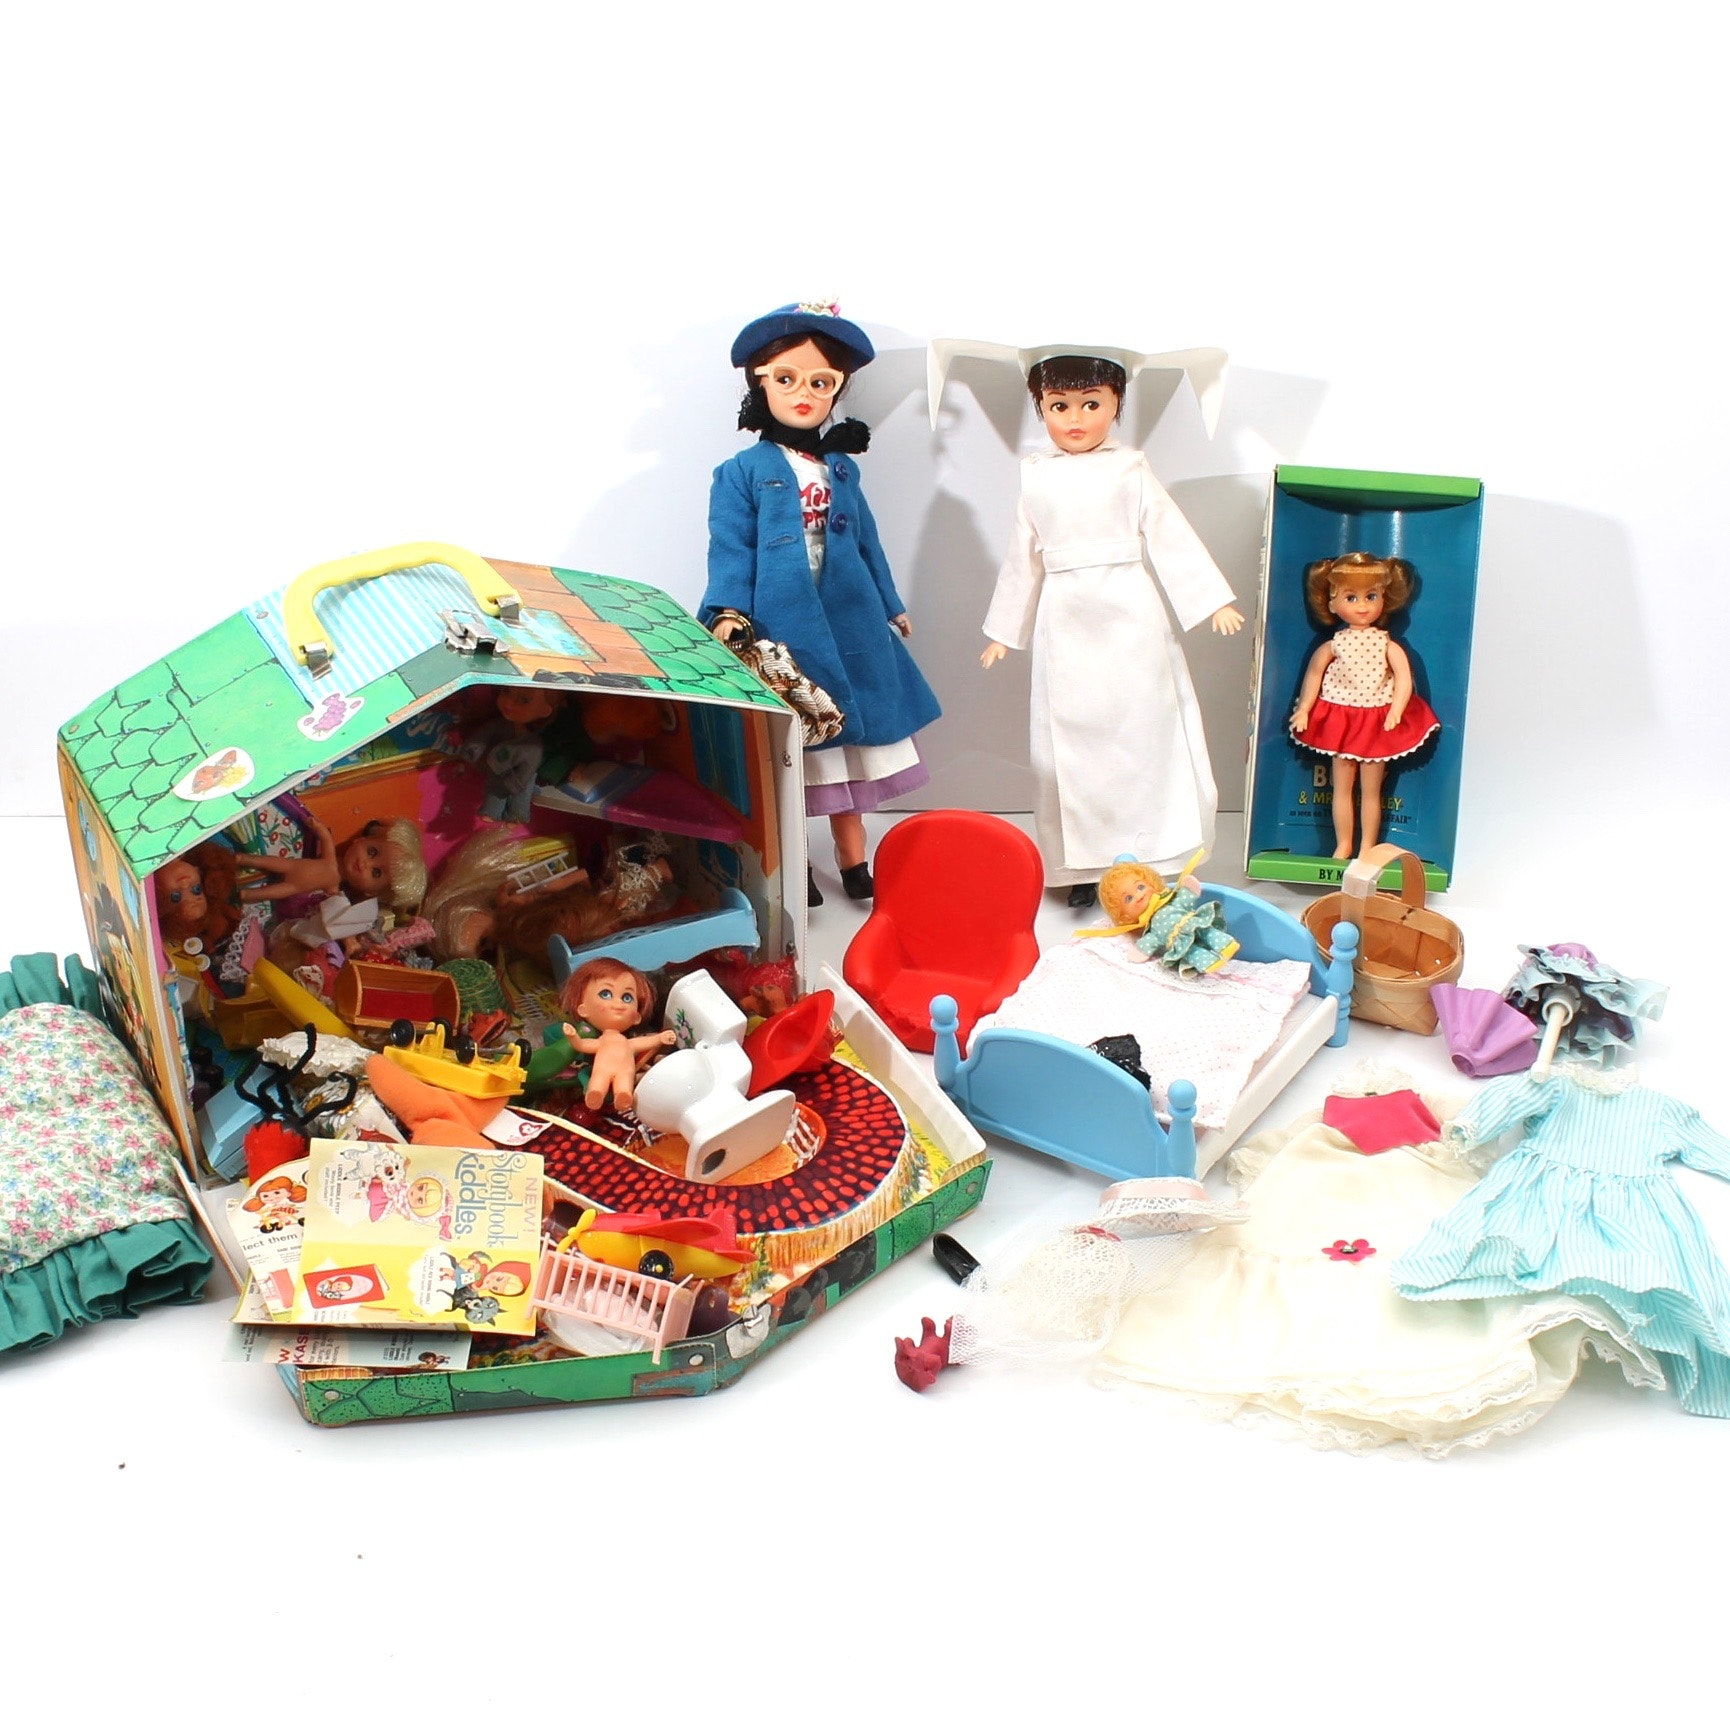 Vintage Dolls Featuring Mary Poppins and the Flying Nun